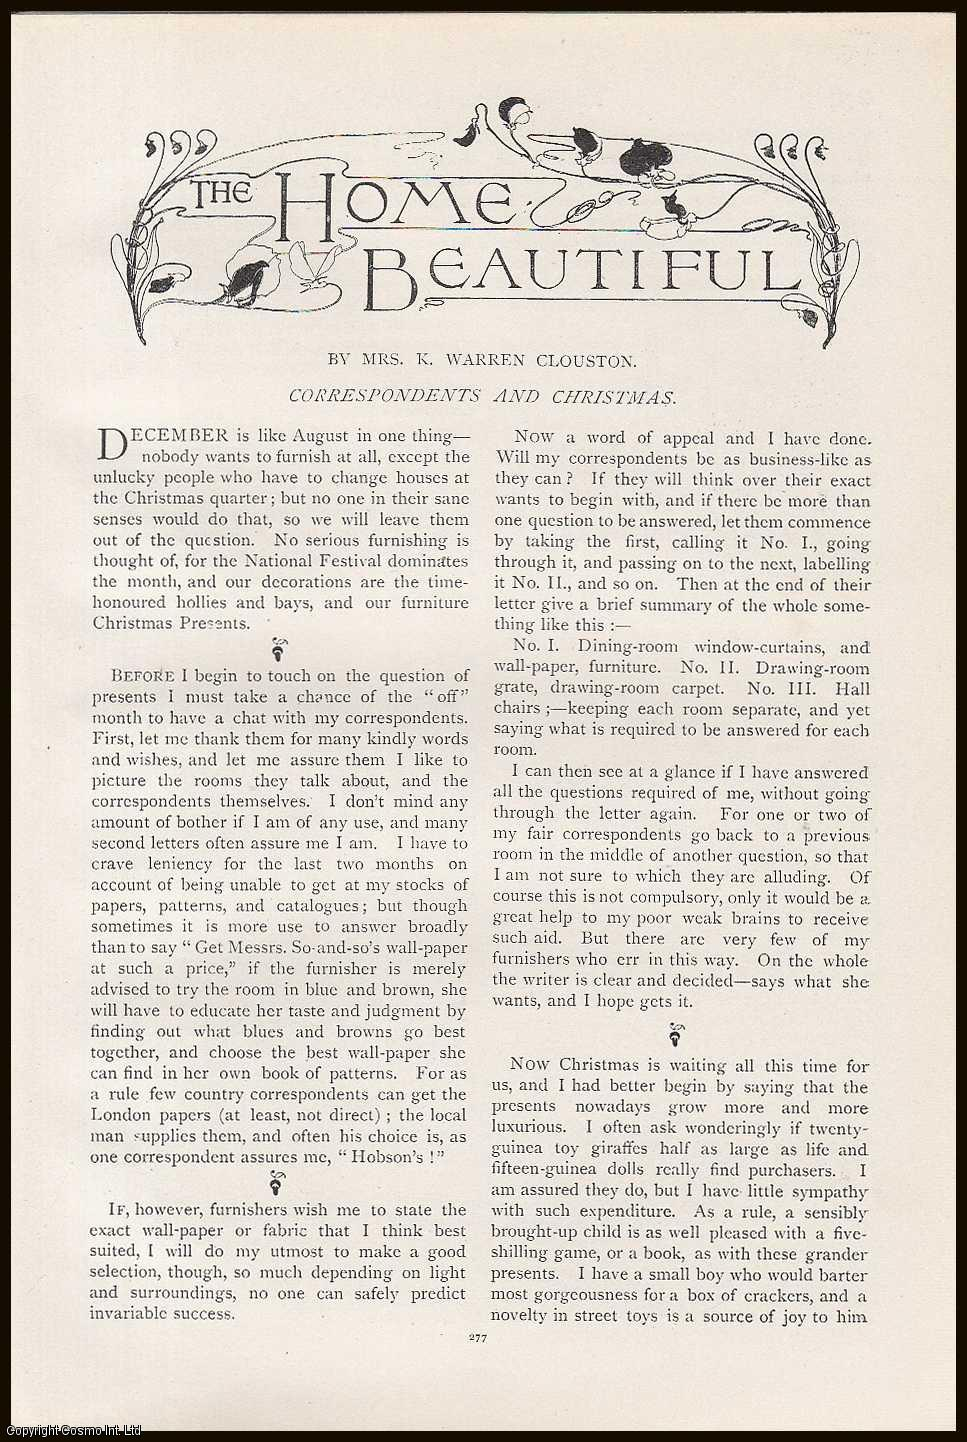 CLOUSTON, MRS. K. WARREN - Messrs, Correspondents and Christmas: The Home Beautiful. An original article from the Lady's Realm 1898-99.